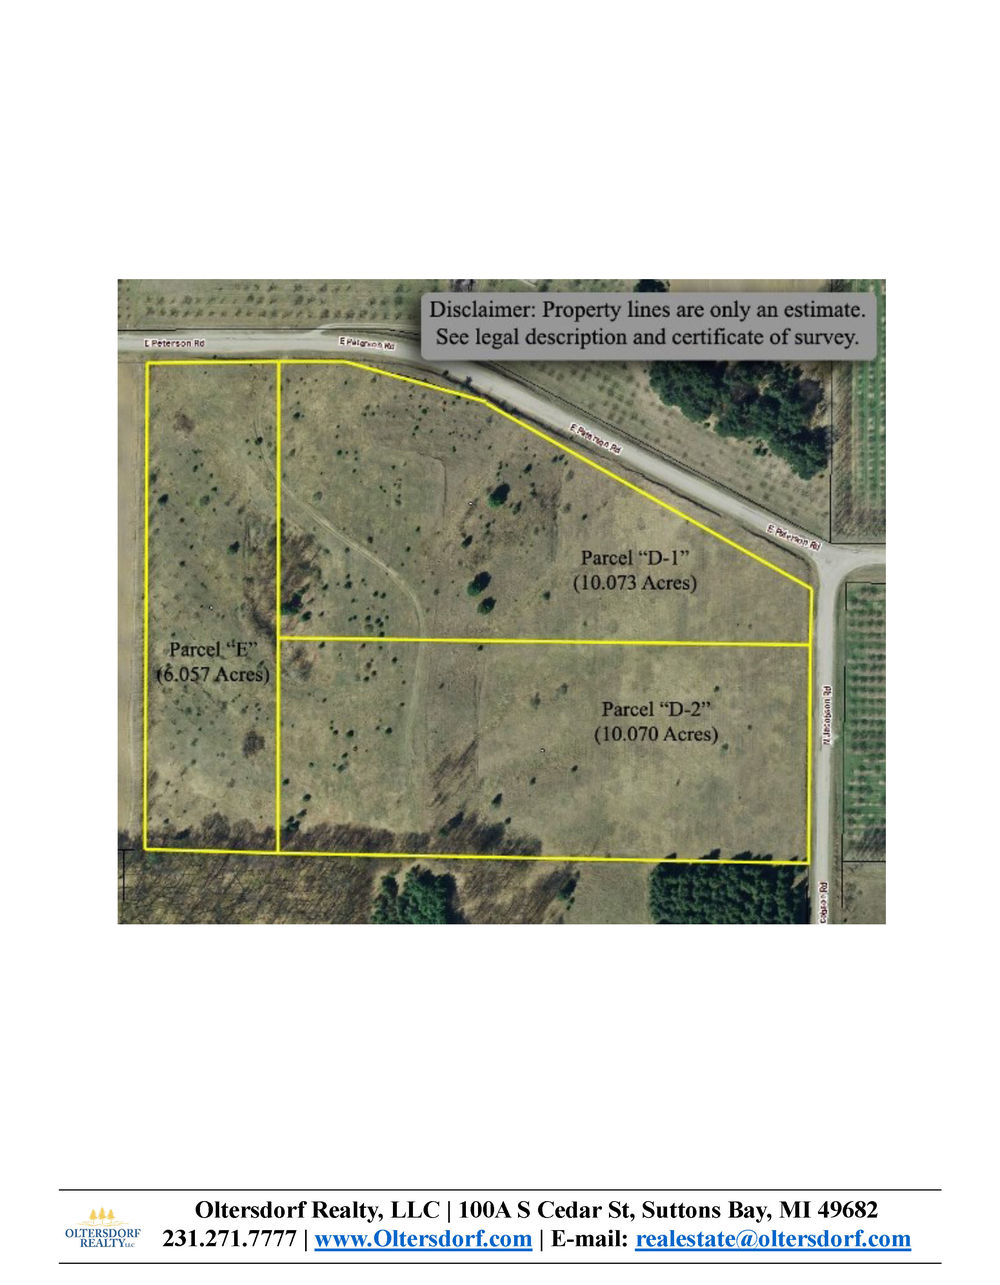 E Peterson Road & N Jacobson Road, Northport, water view acreage for sale by Oltersdorf Realty LLC (7).jpg